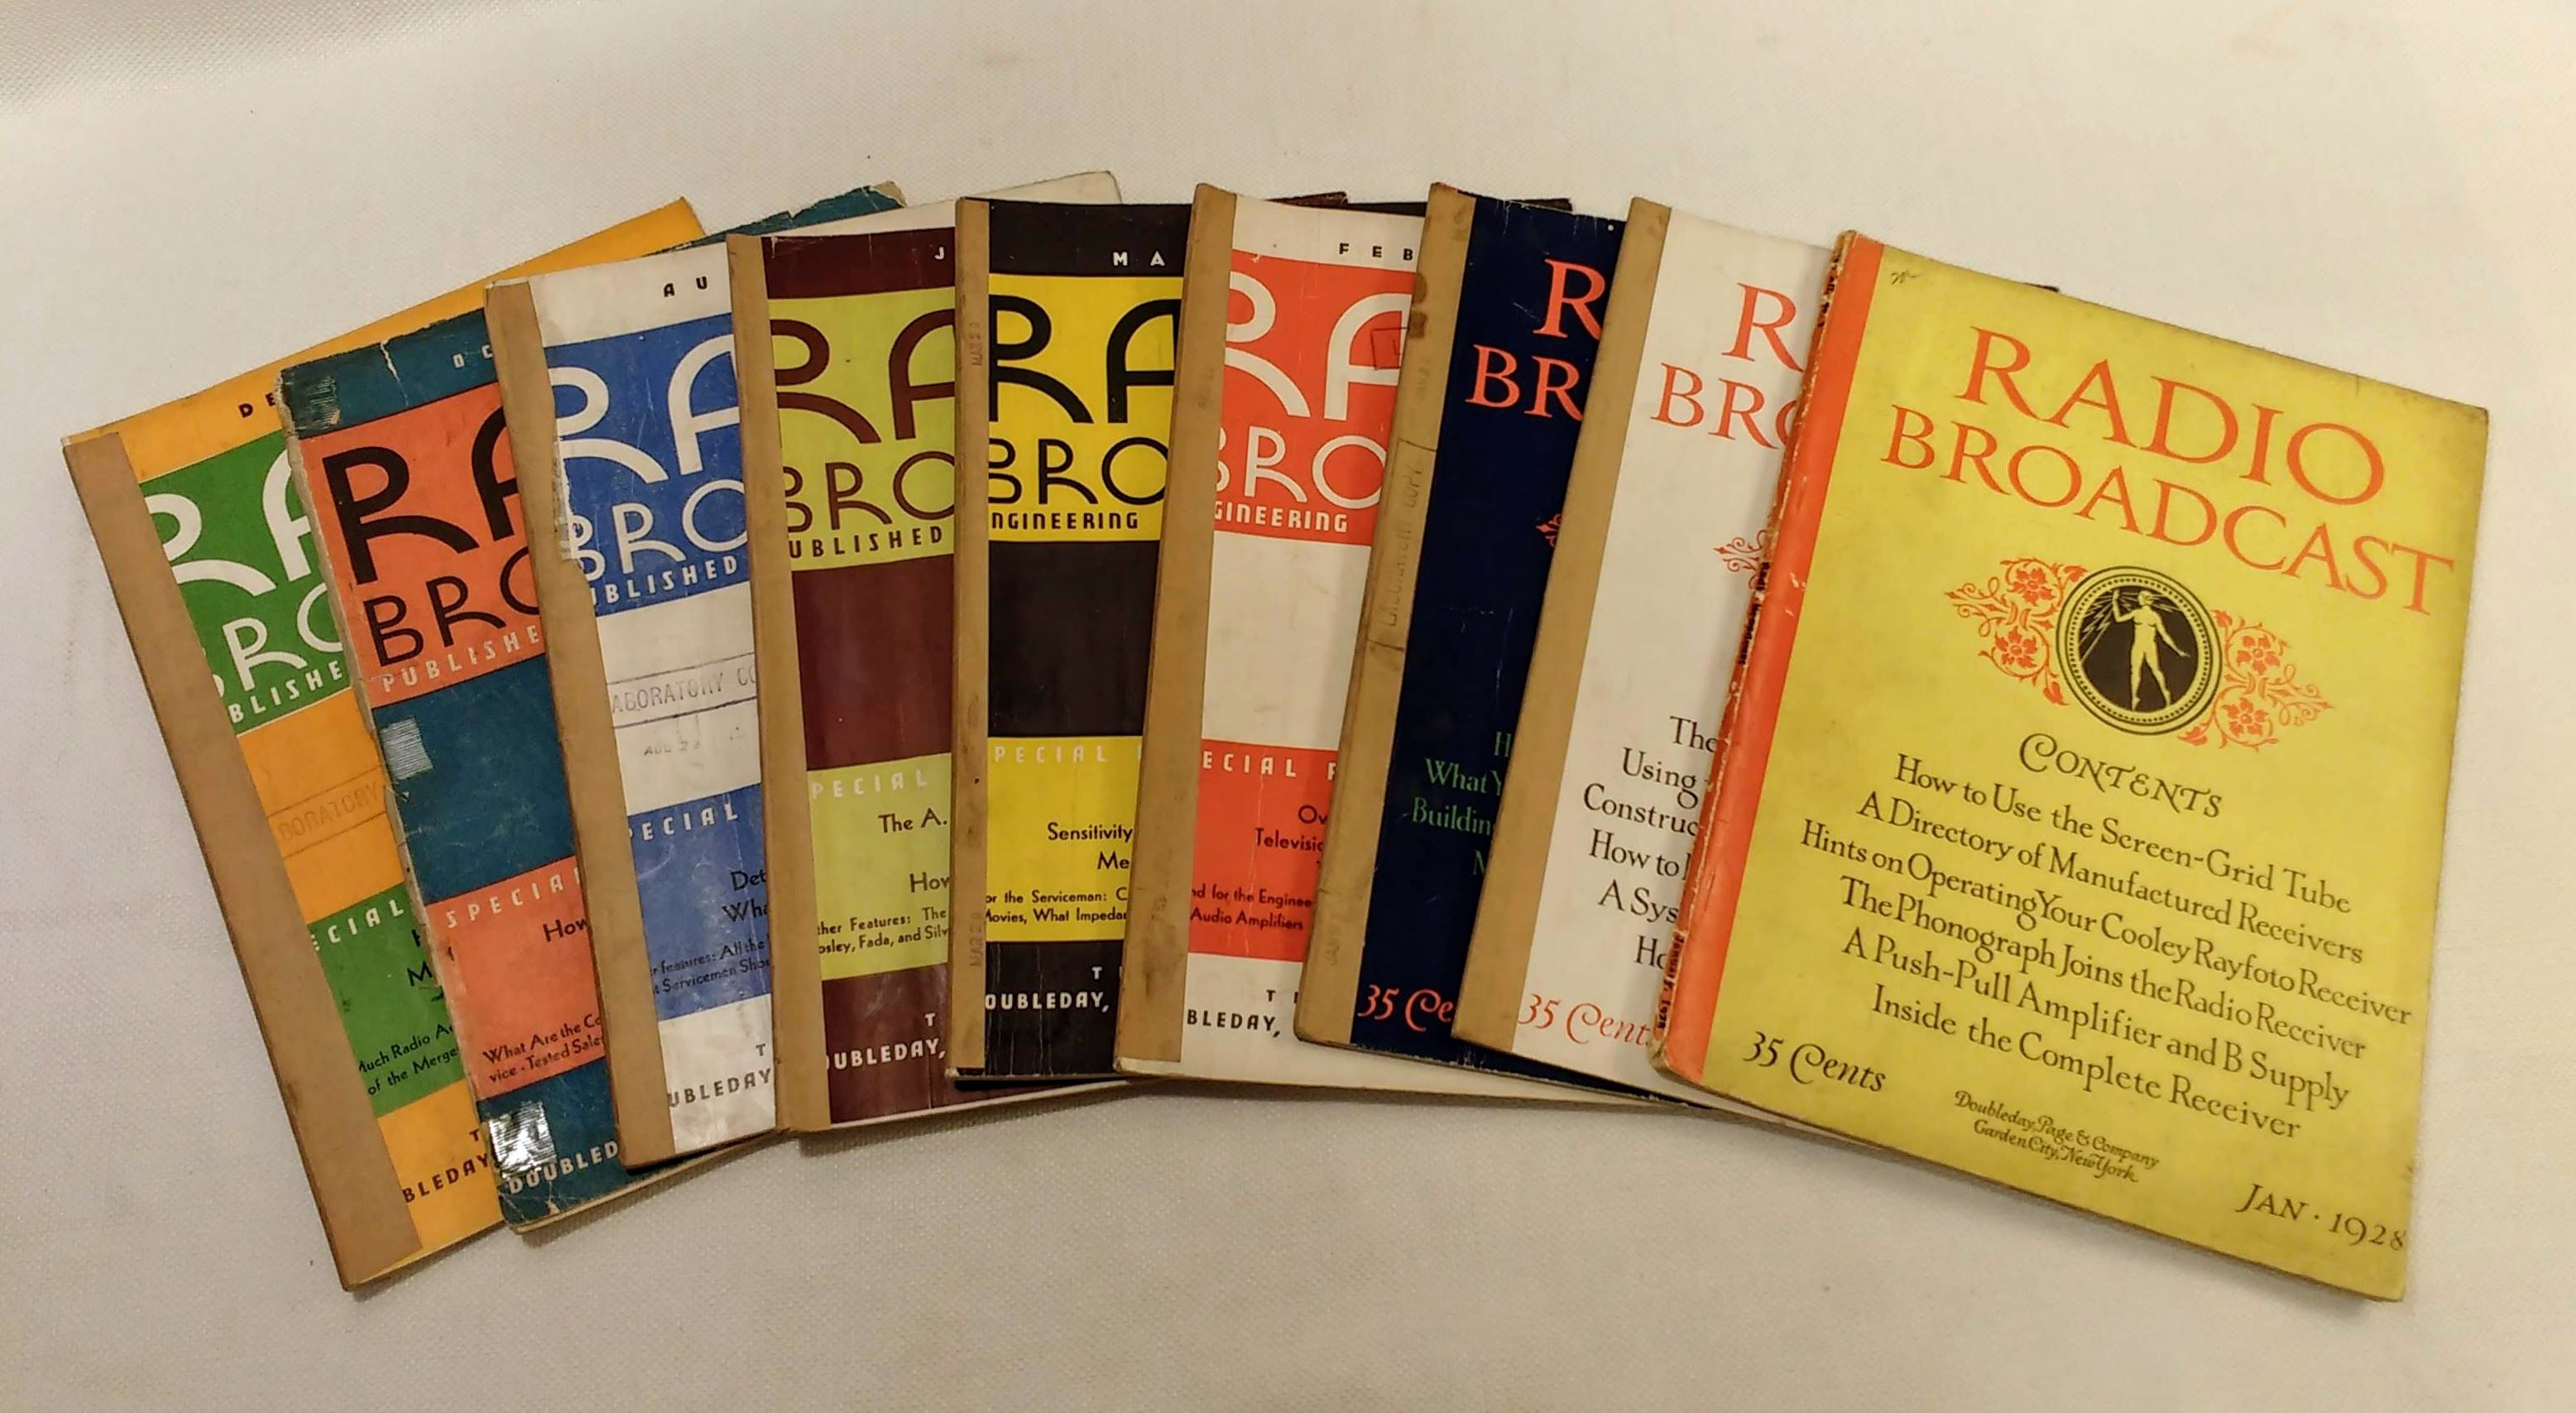 Radio Broadcast Magazine: 9 issues from 1928-1929, Wing, Willis Kingsley [editor]